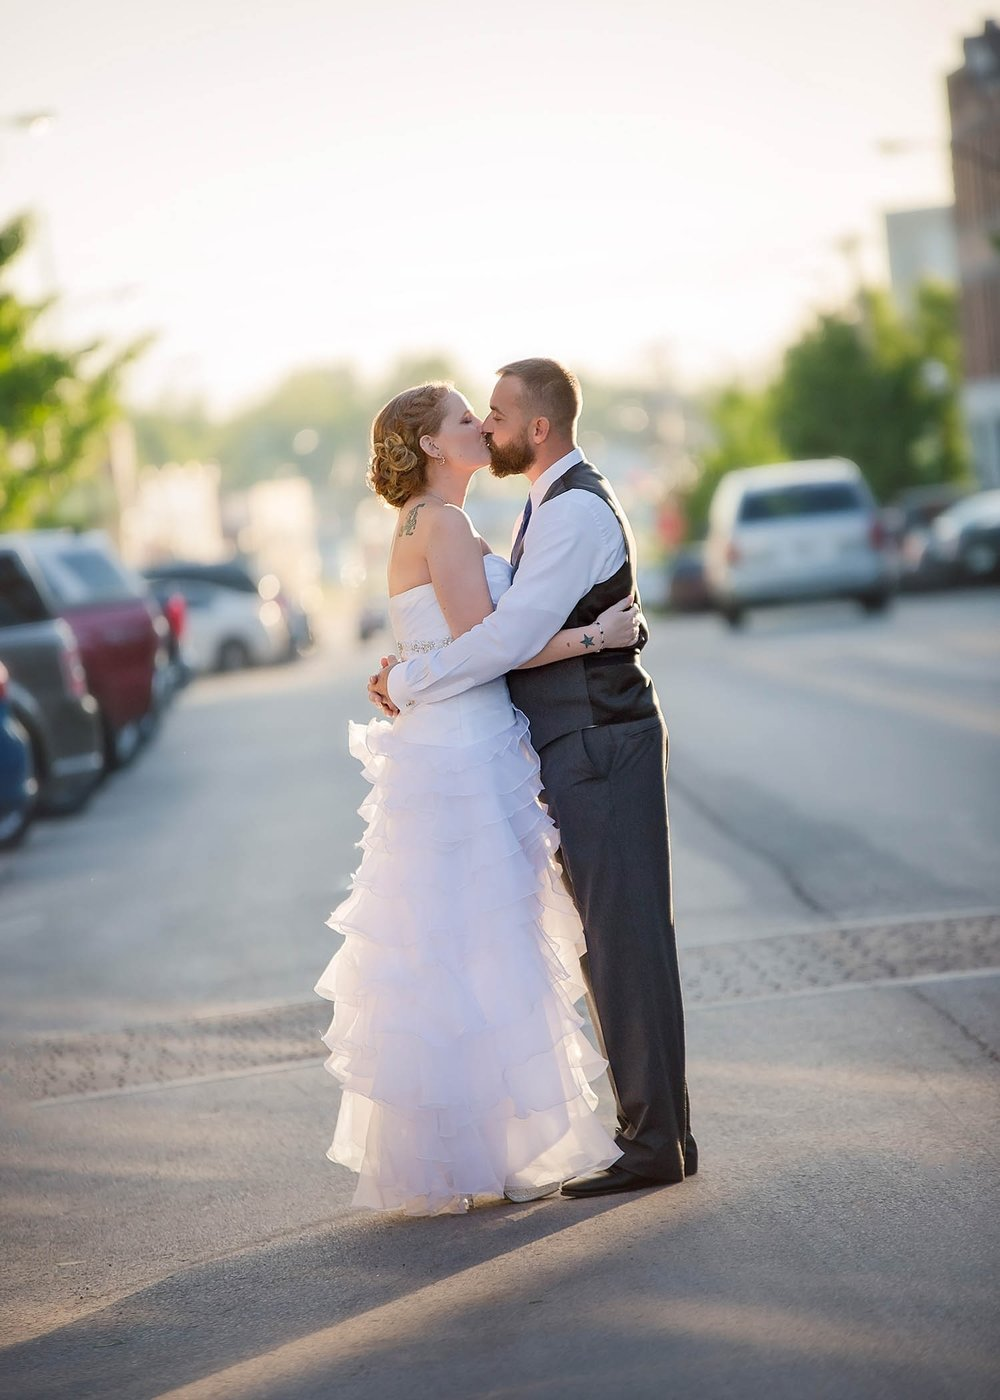 Historic Commercial Street in Springfield, MO has a lot to offer a couple on their wedding day. Sunsets here are particularly beautiful.